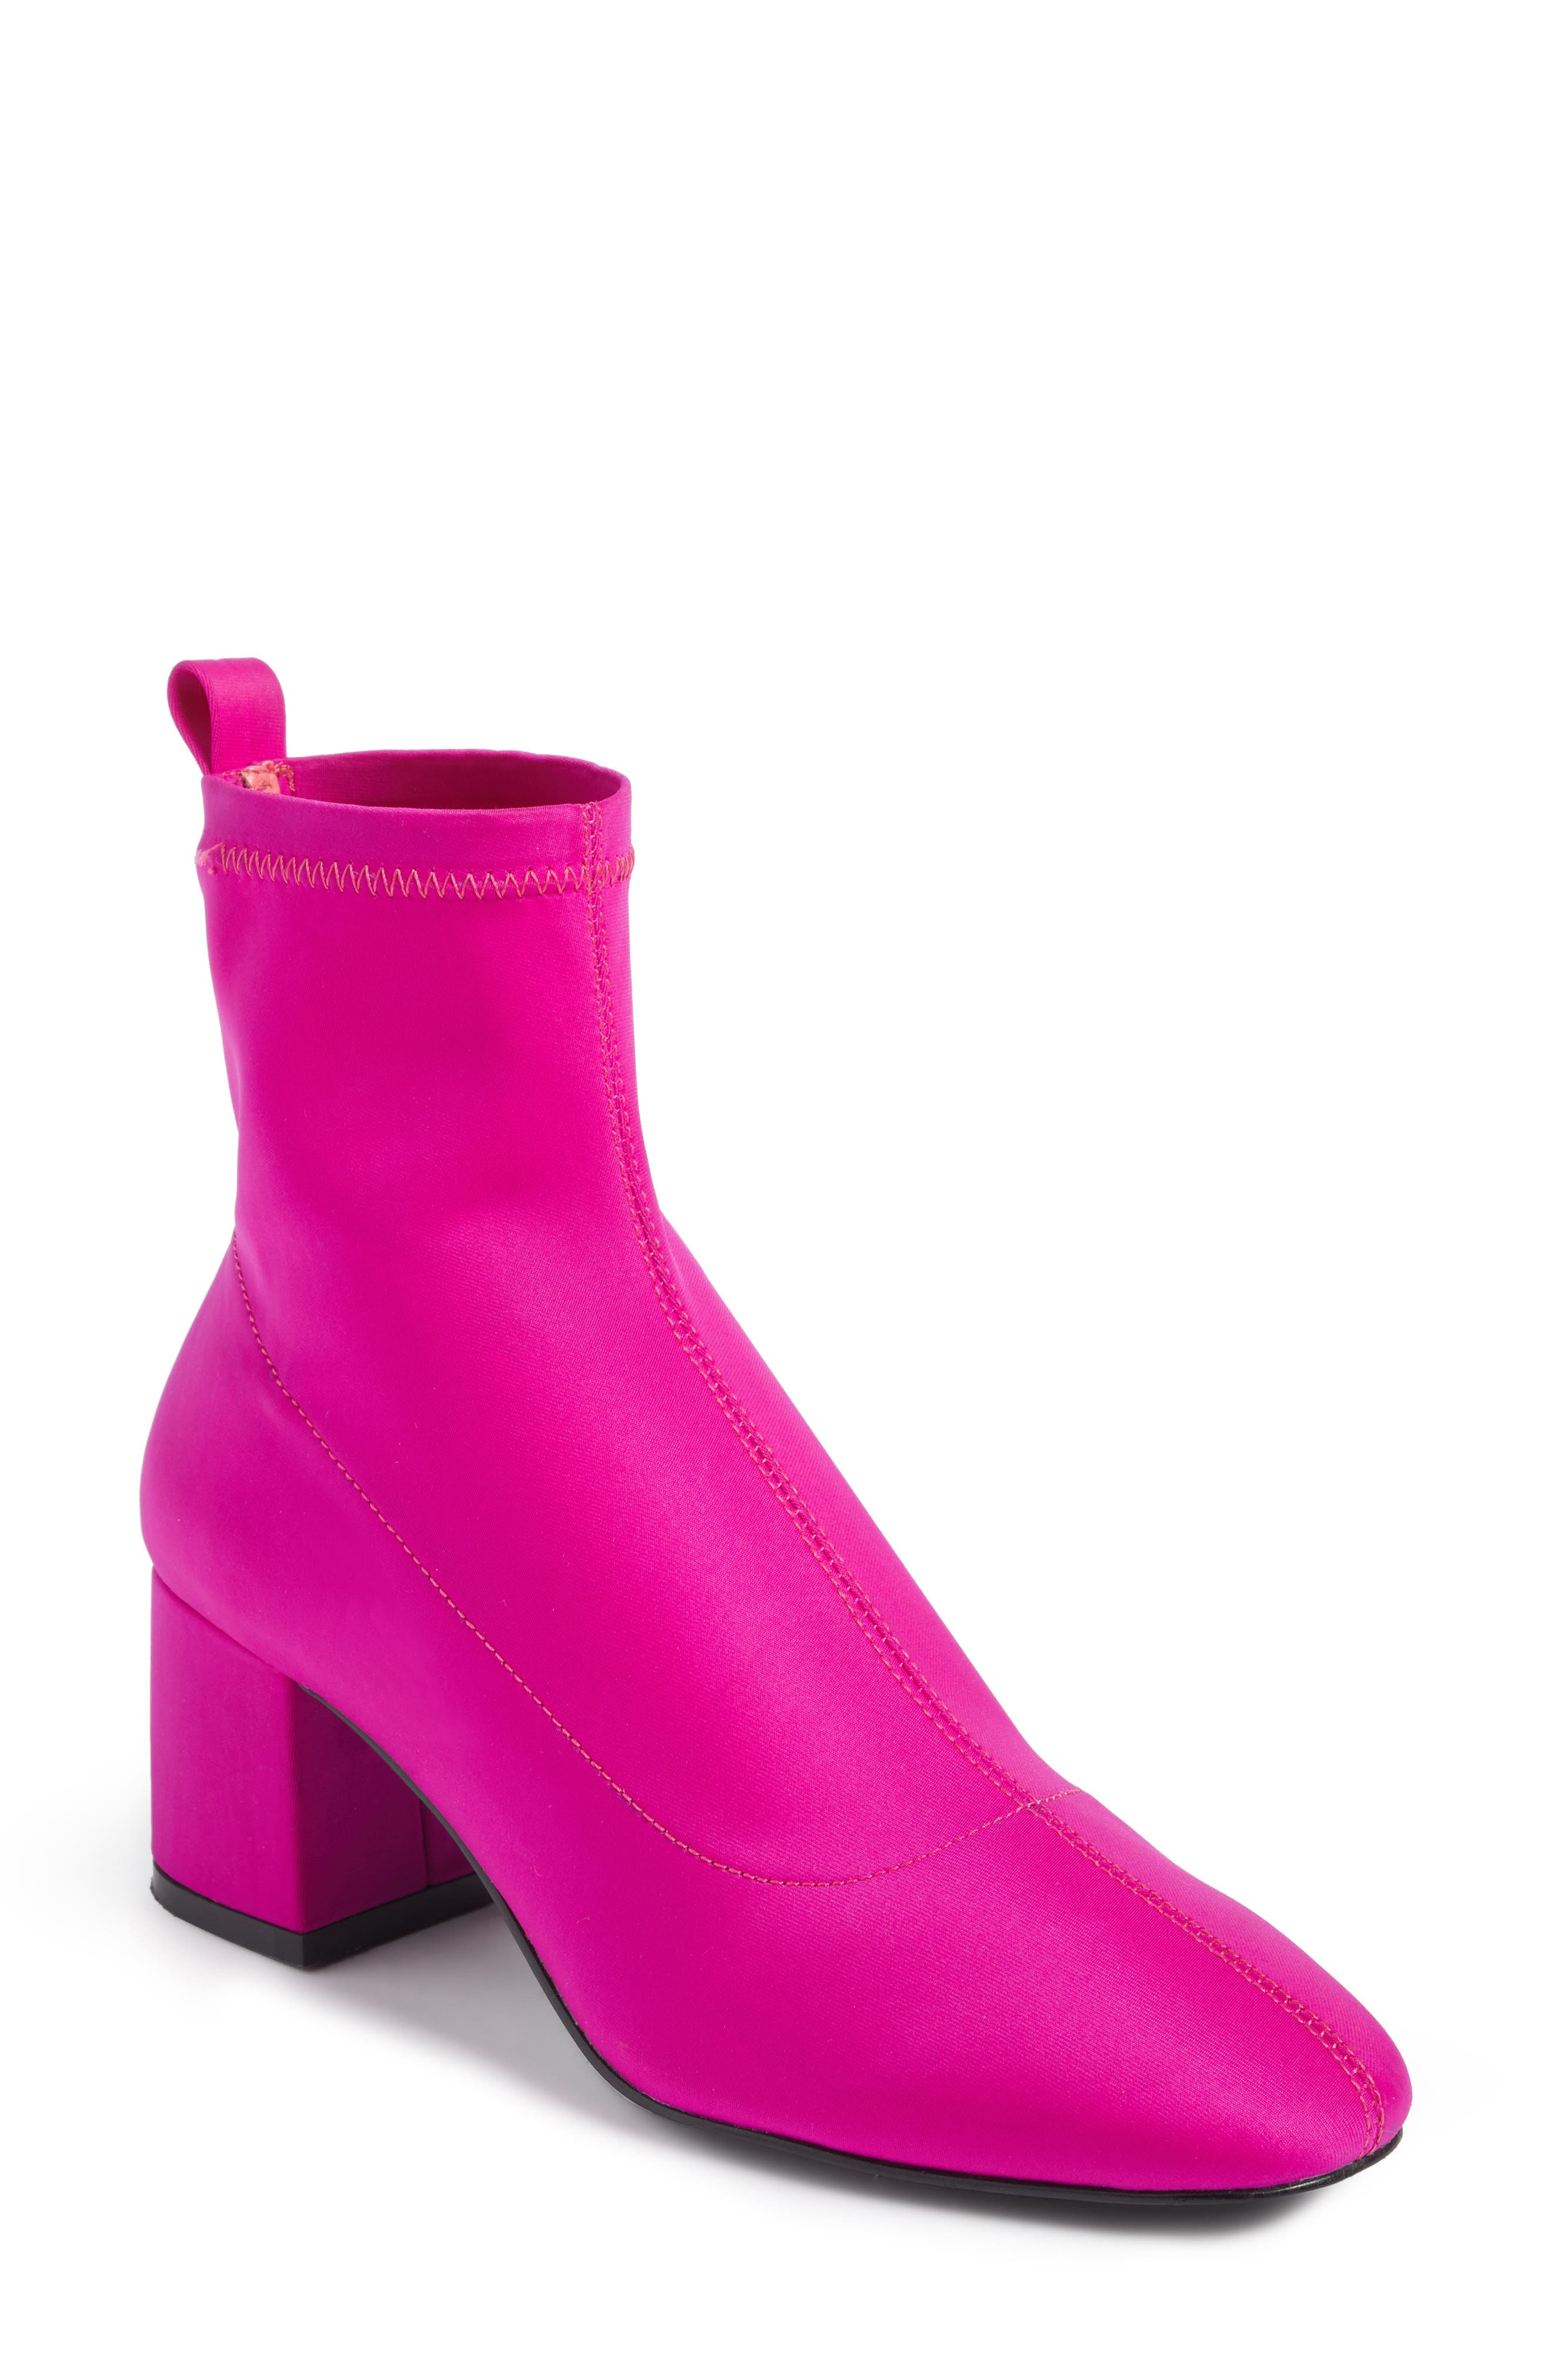 Buttercup Bootie,                         Main,                         color, Pink